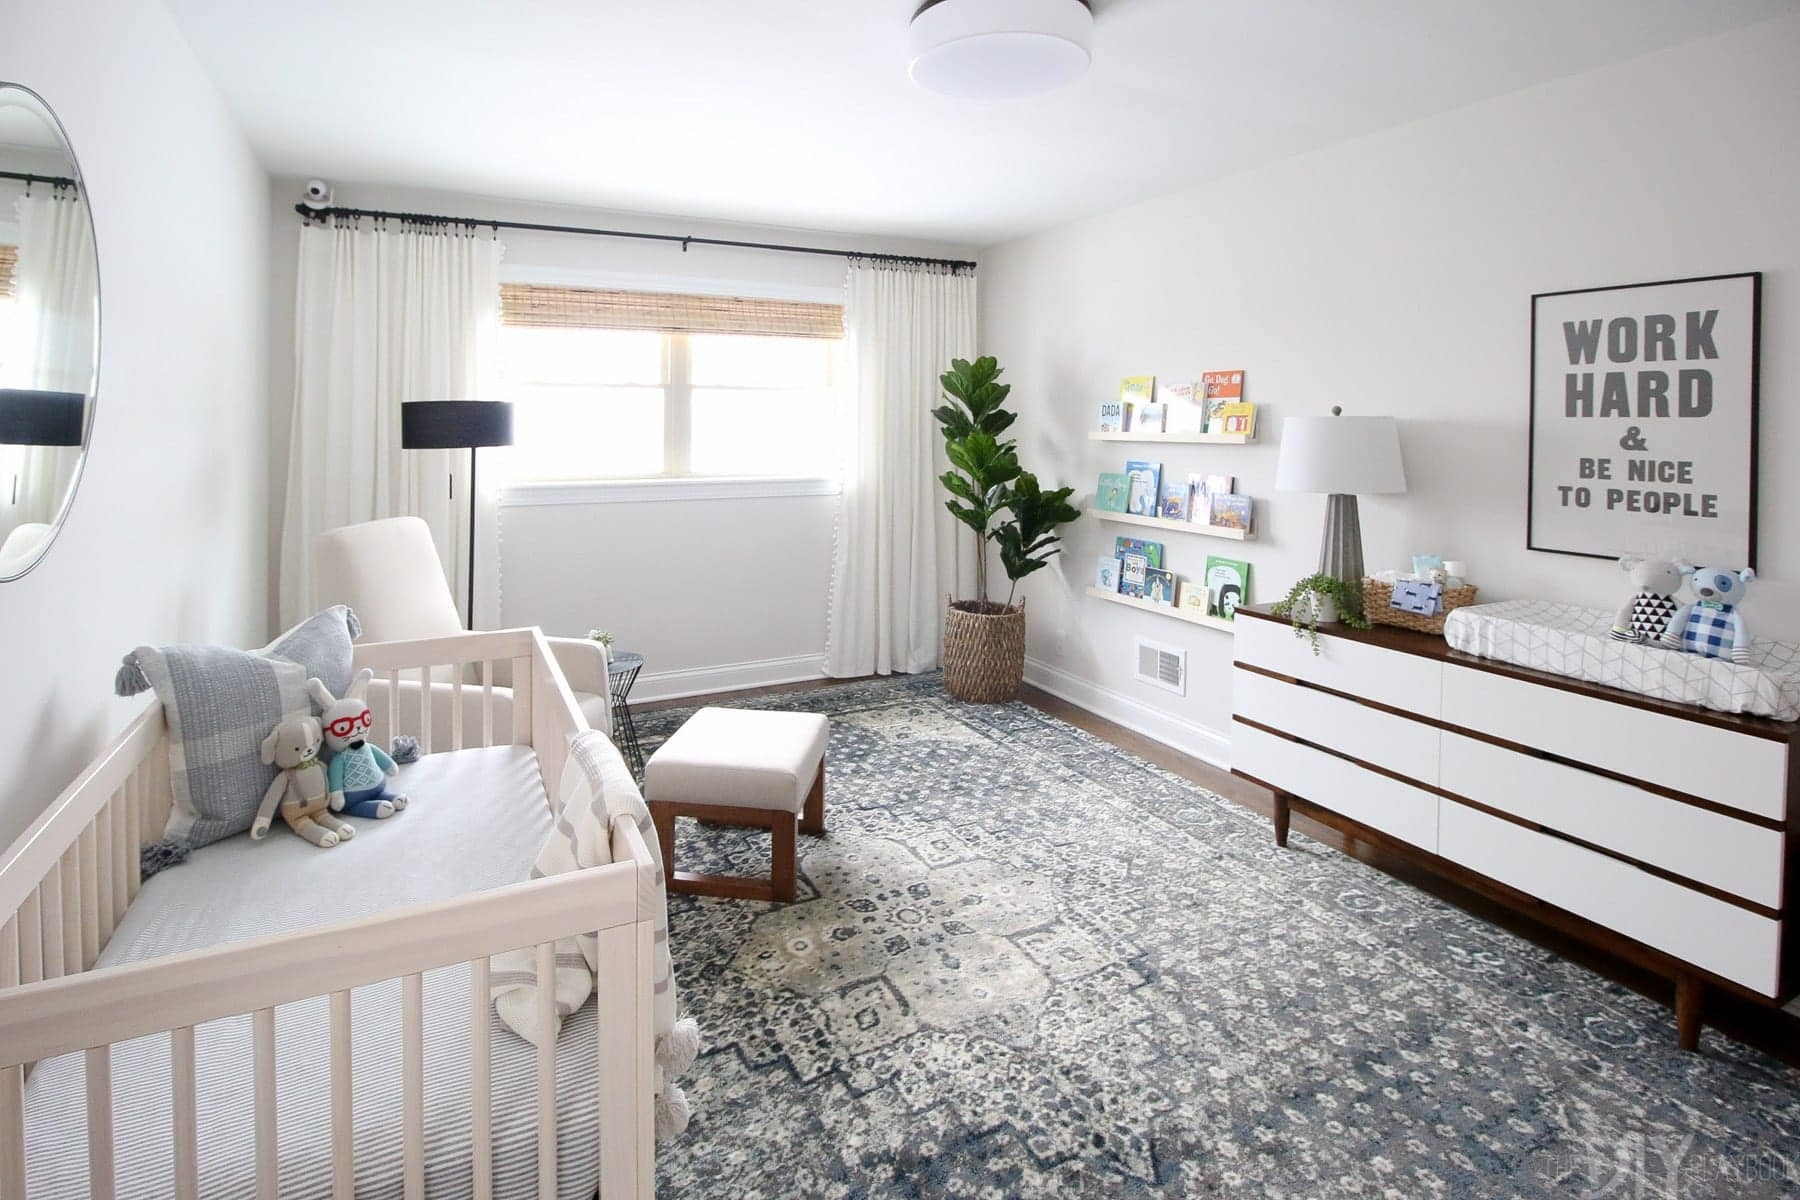 A neutral nursery with dresser, crib, and rocker